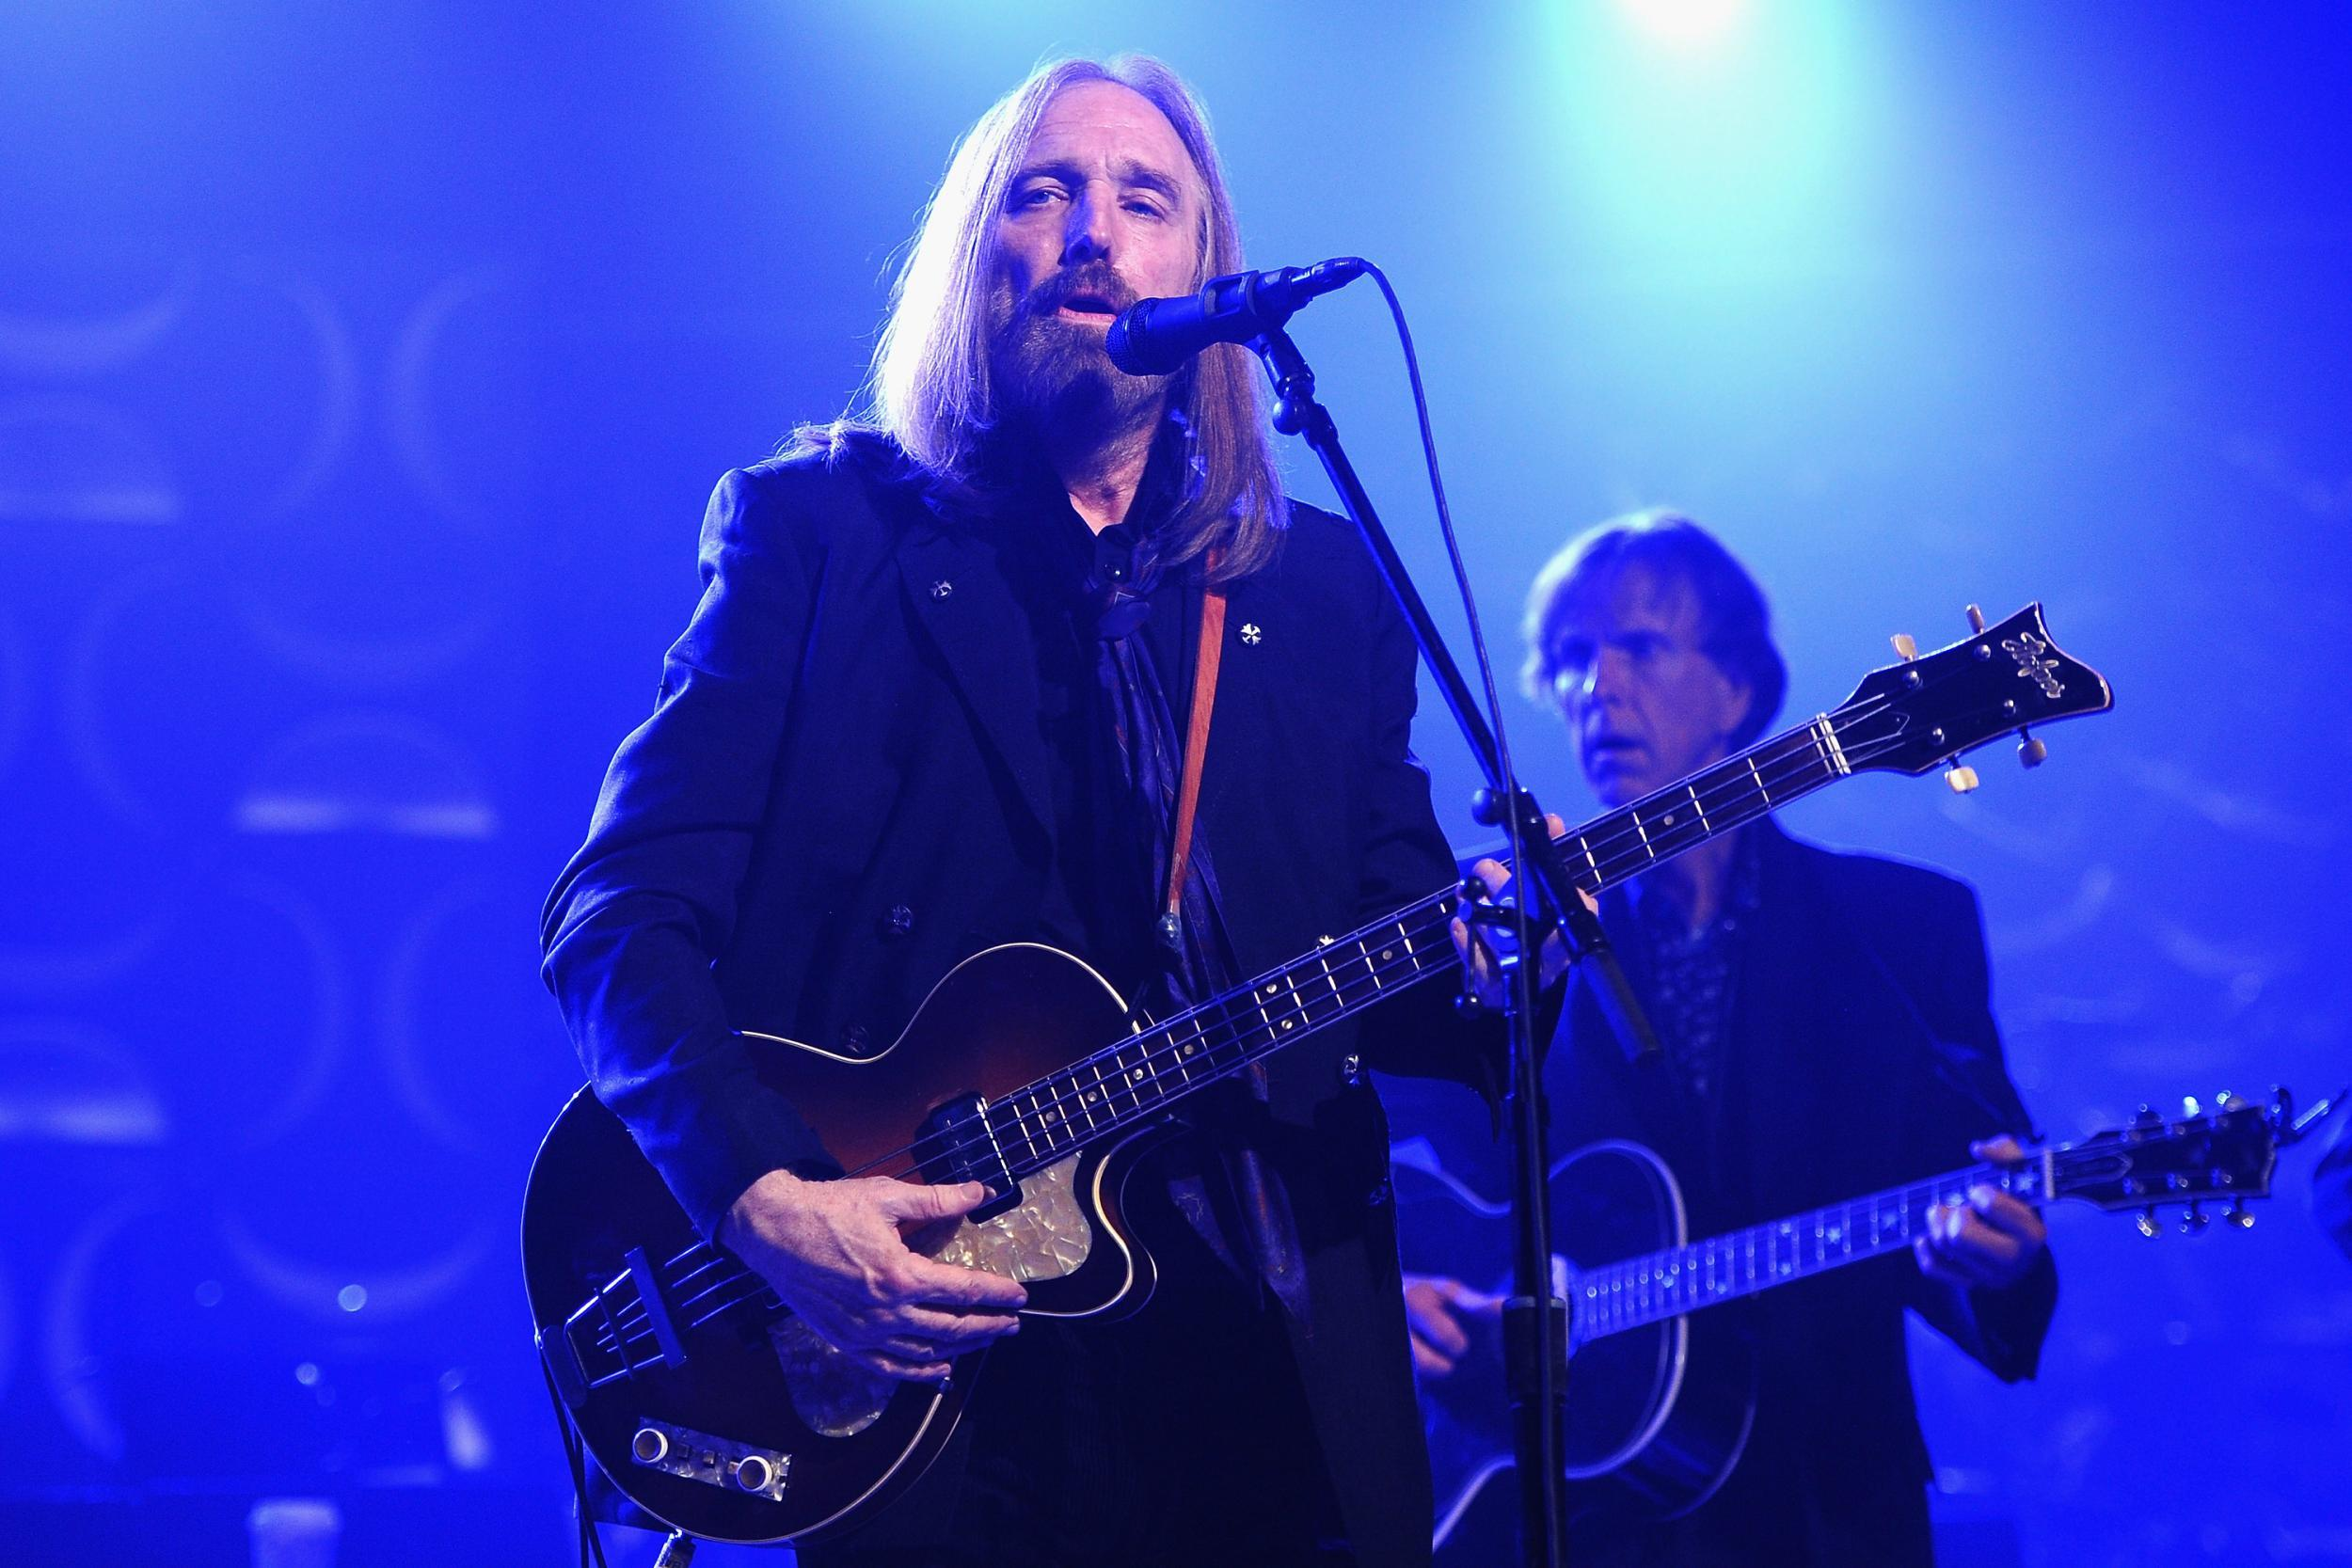 tom petty latest news breaking stories and comment the independent